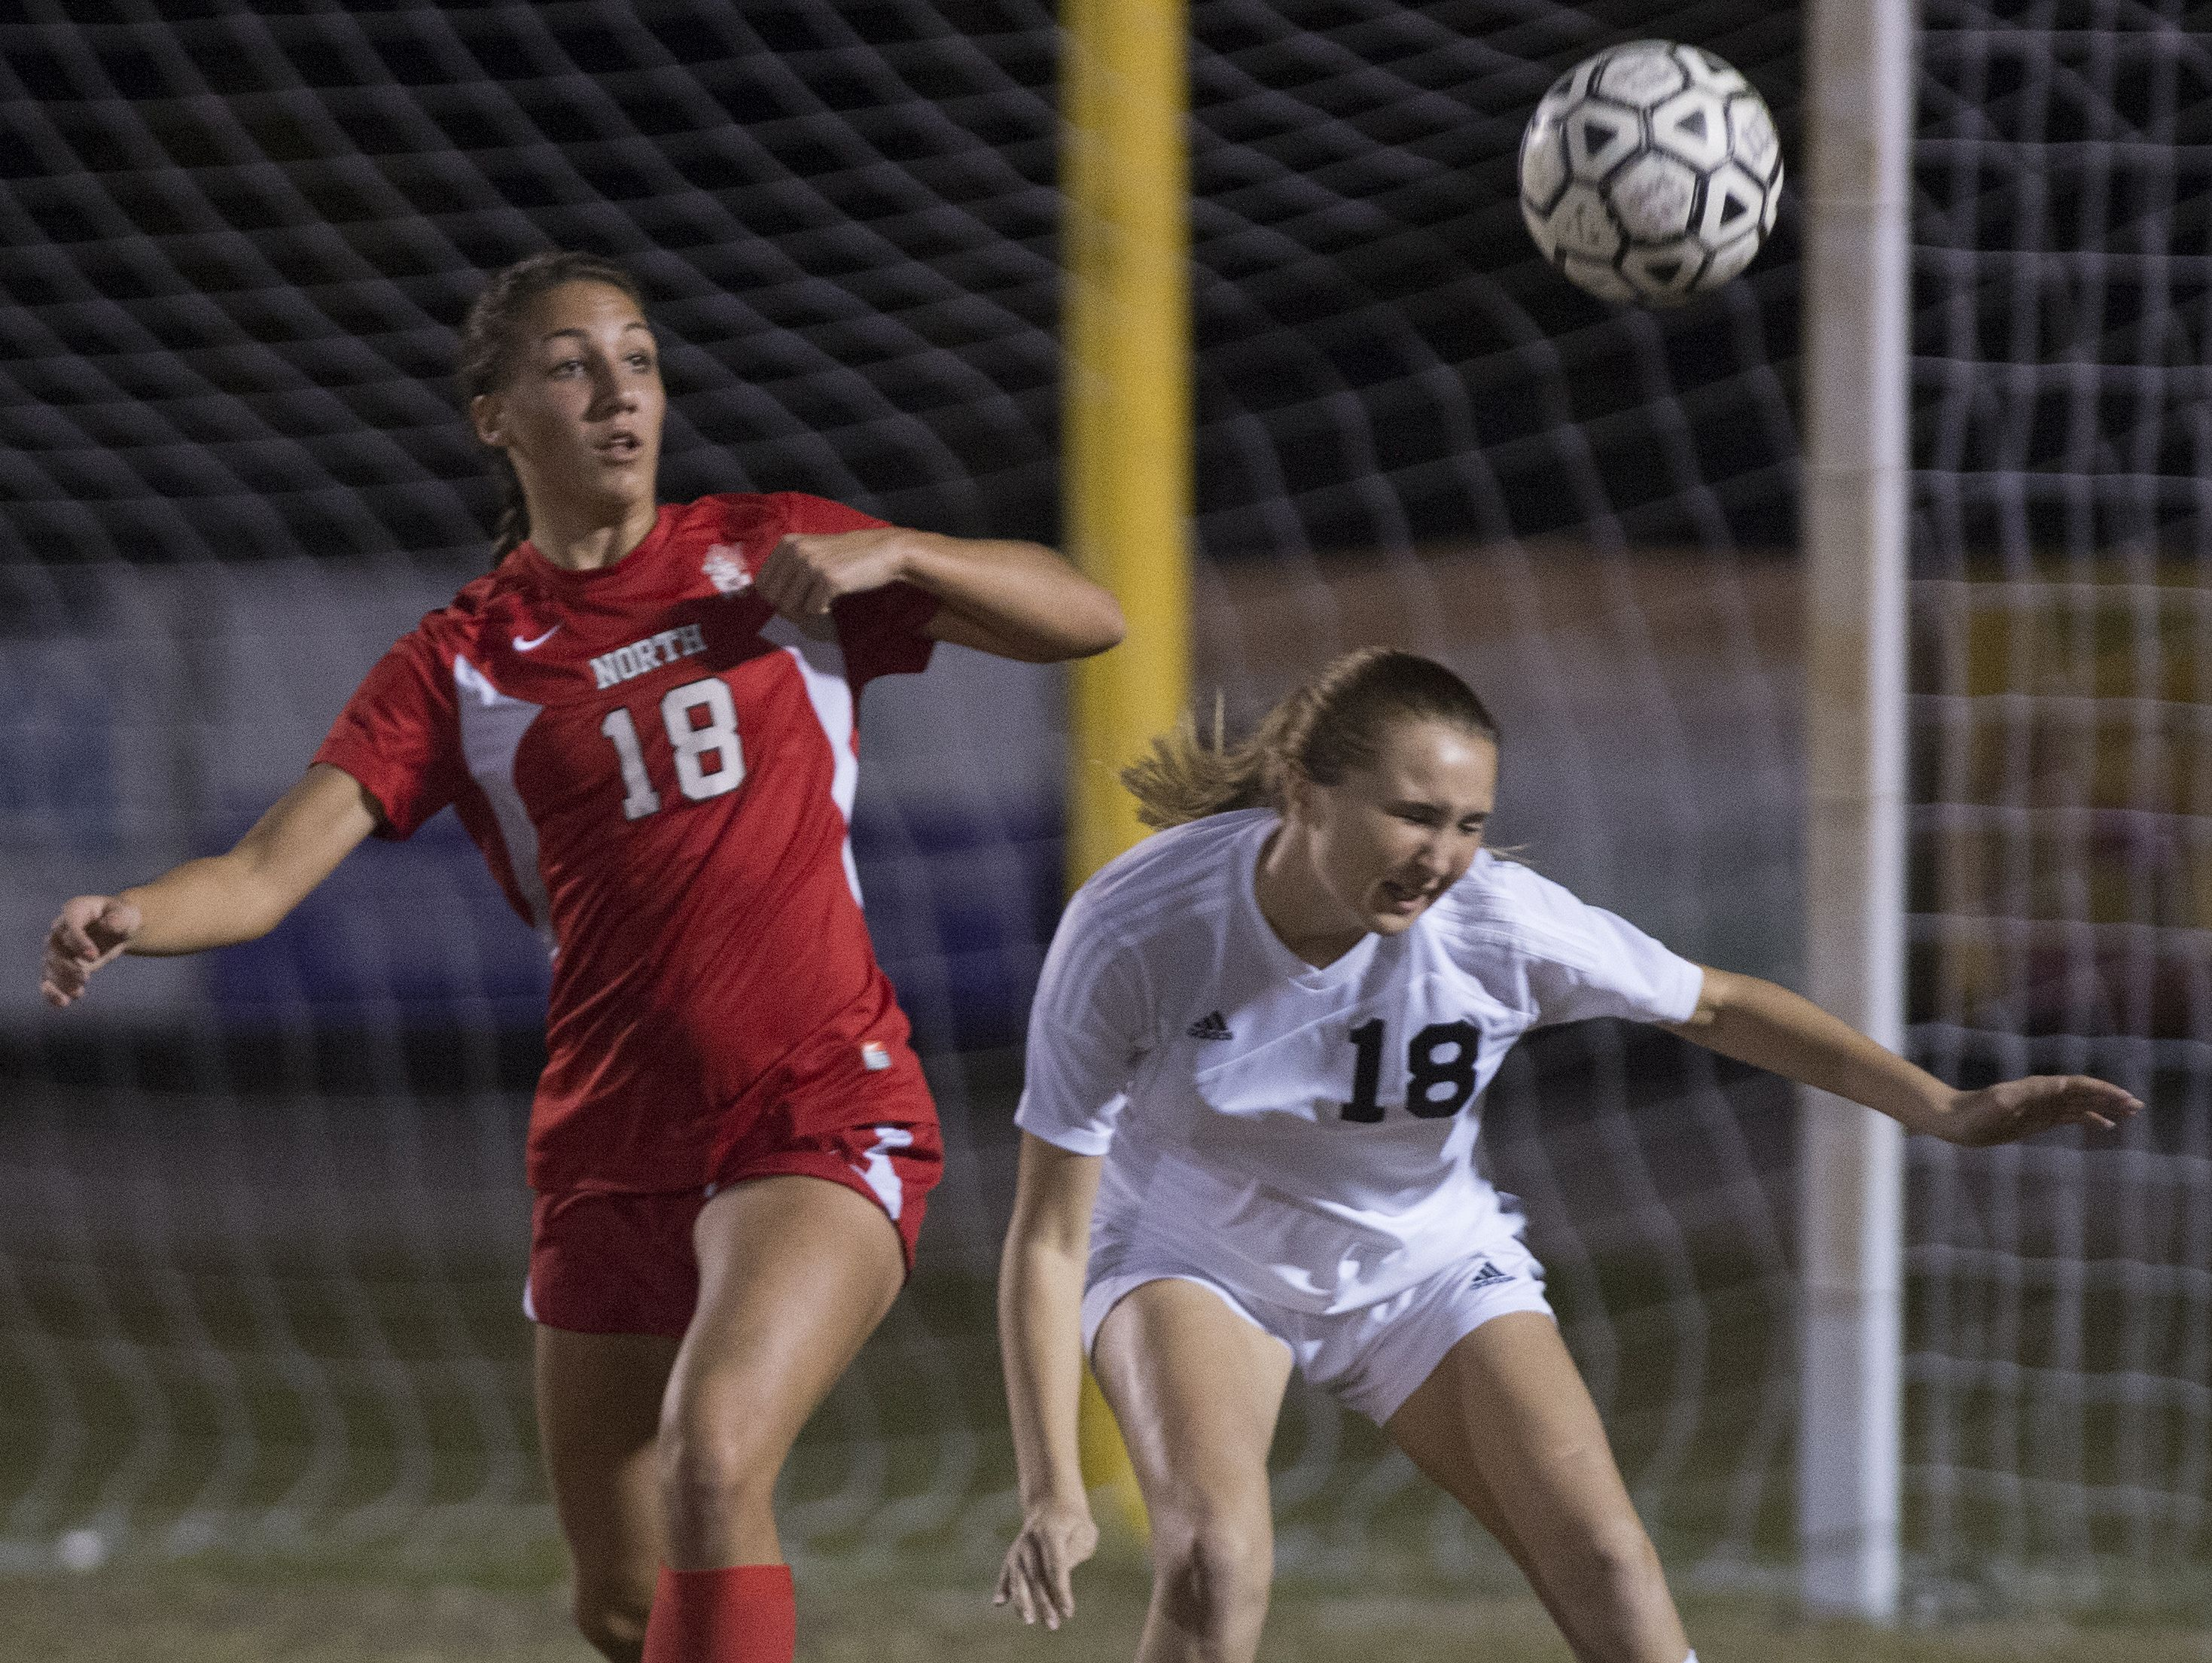 Mariner defeated North Fort Myers in a district final last season, but fell to the Red Knights in a regional semifinal.